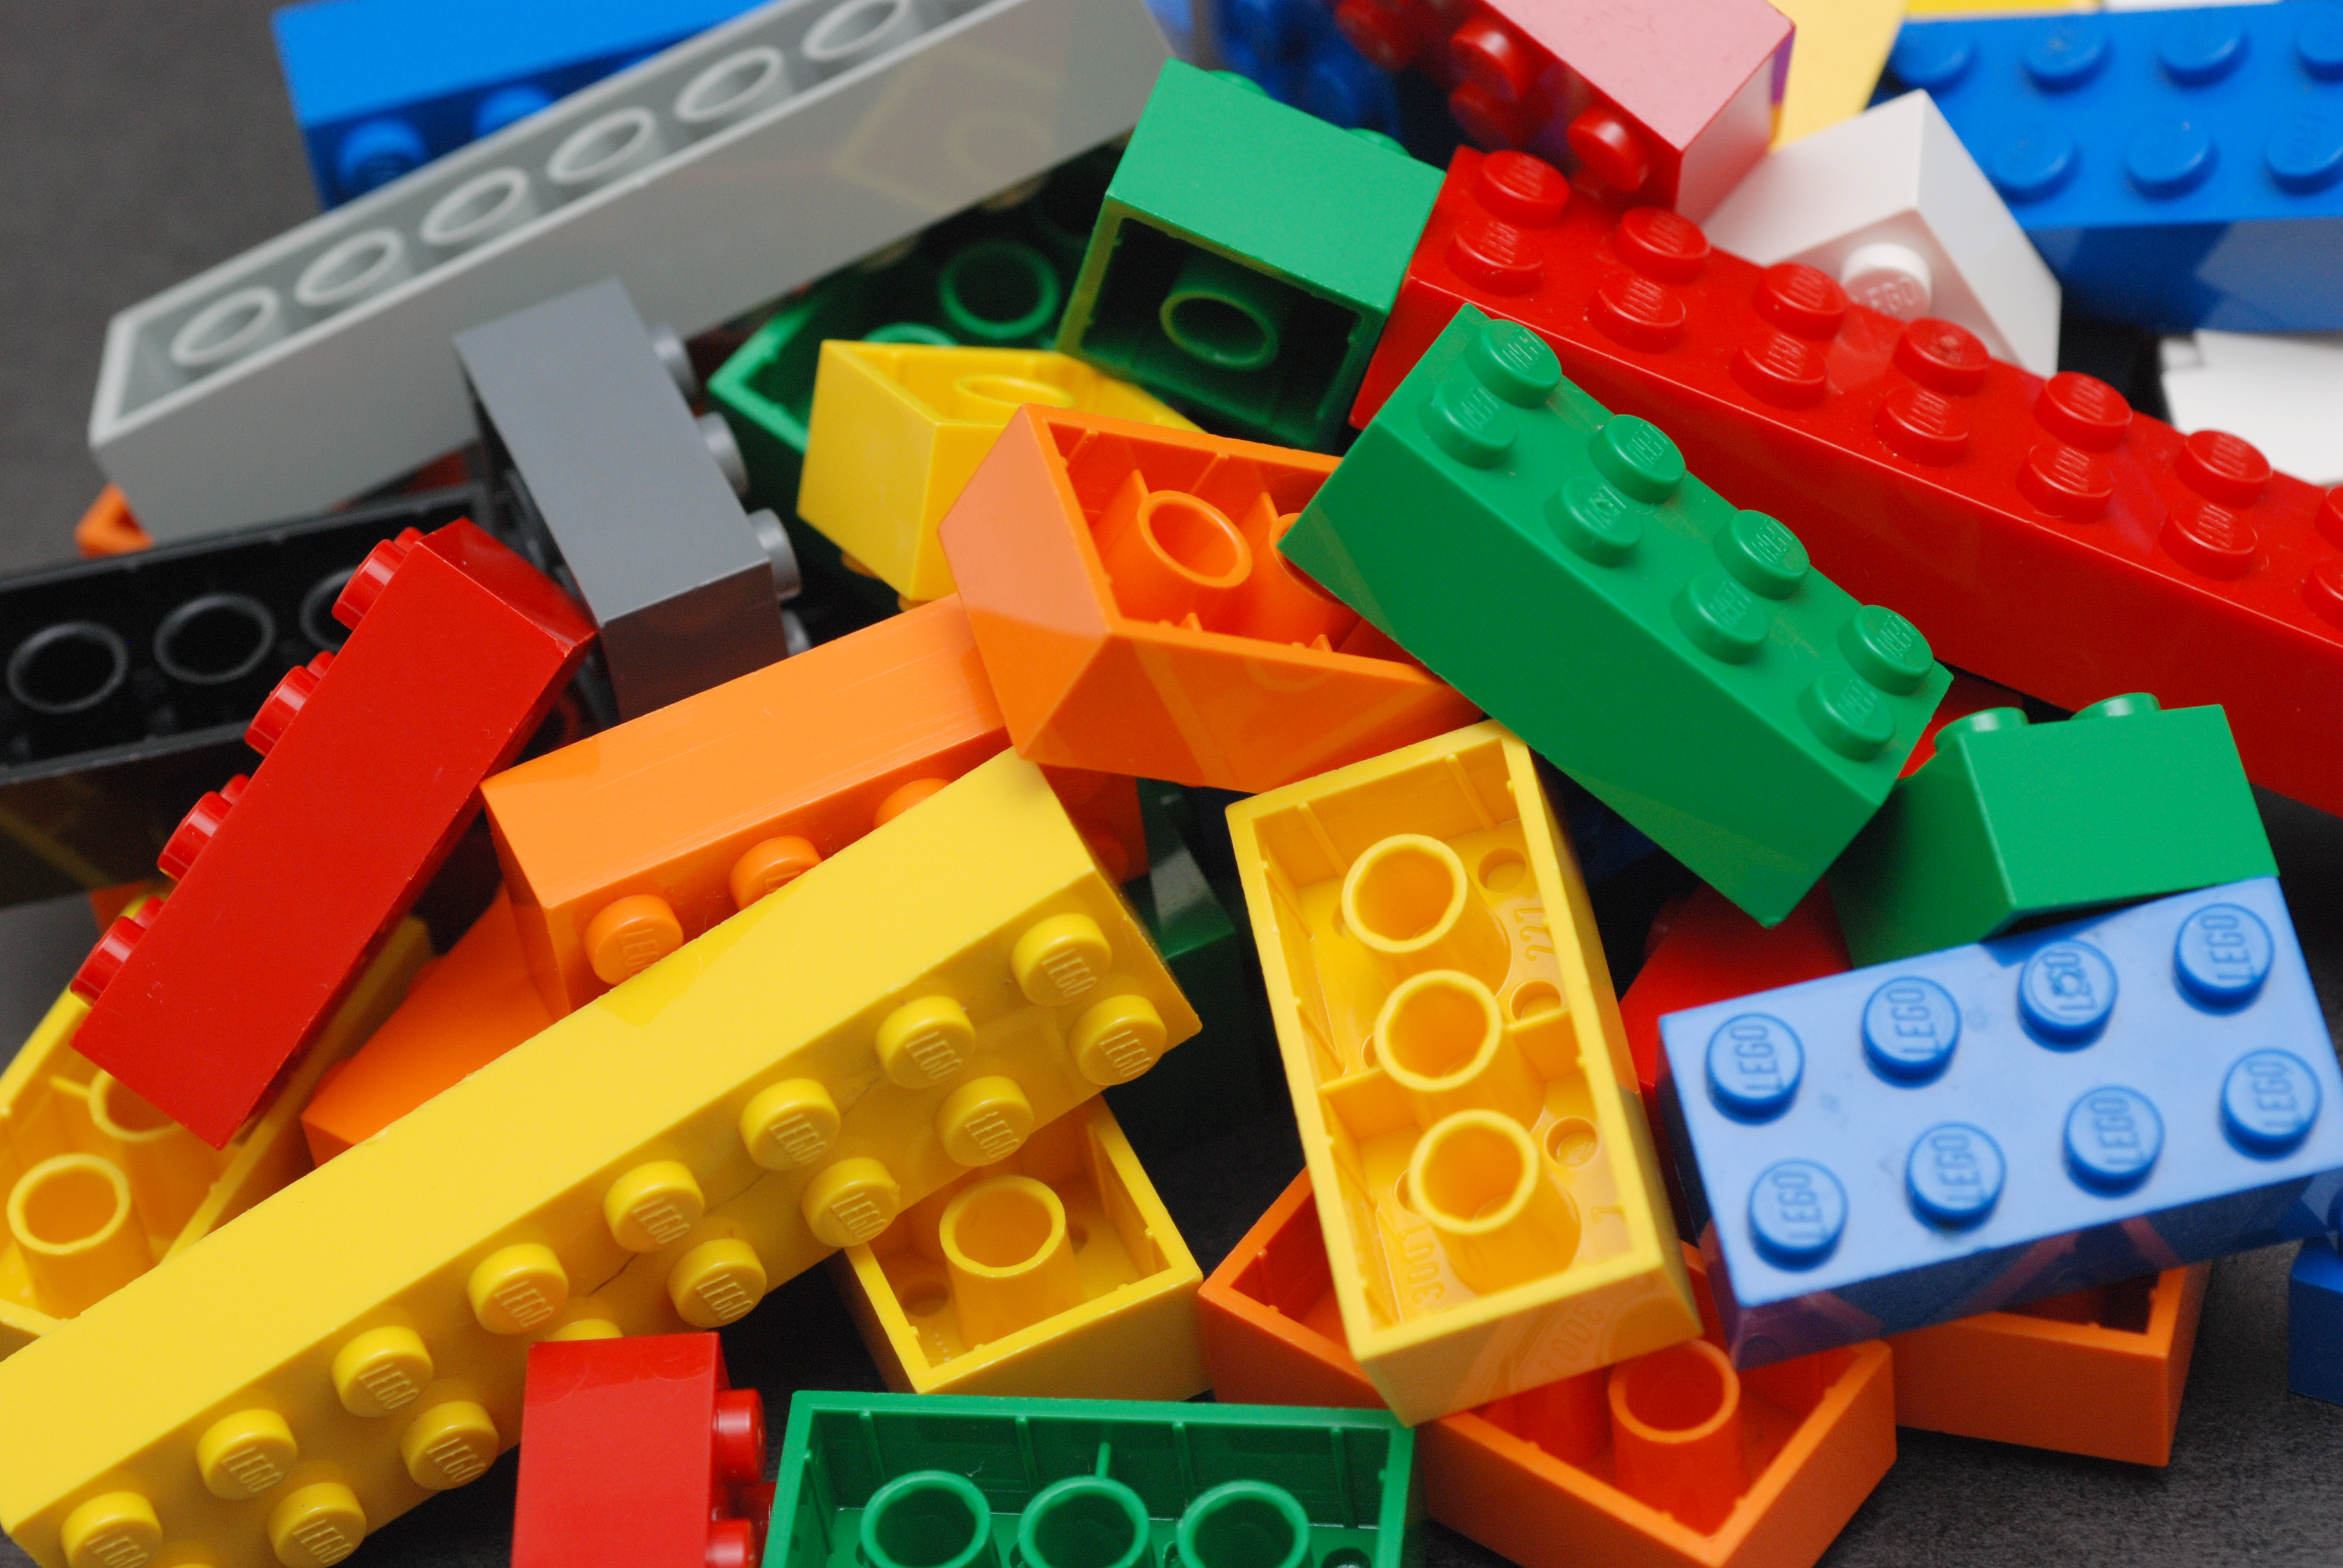 Photo of colorful LEGO bricks